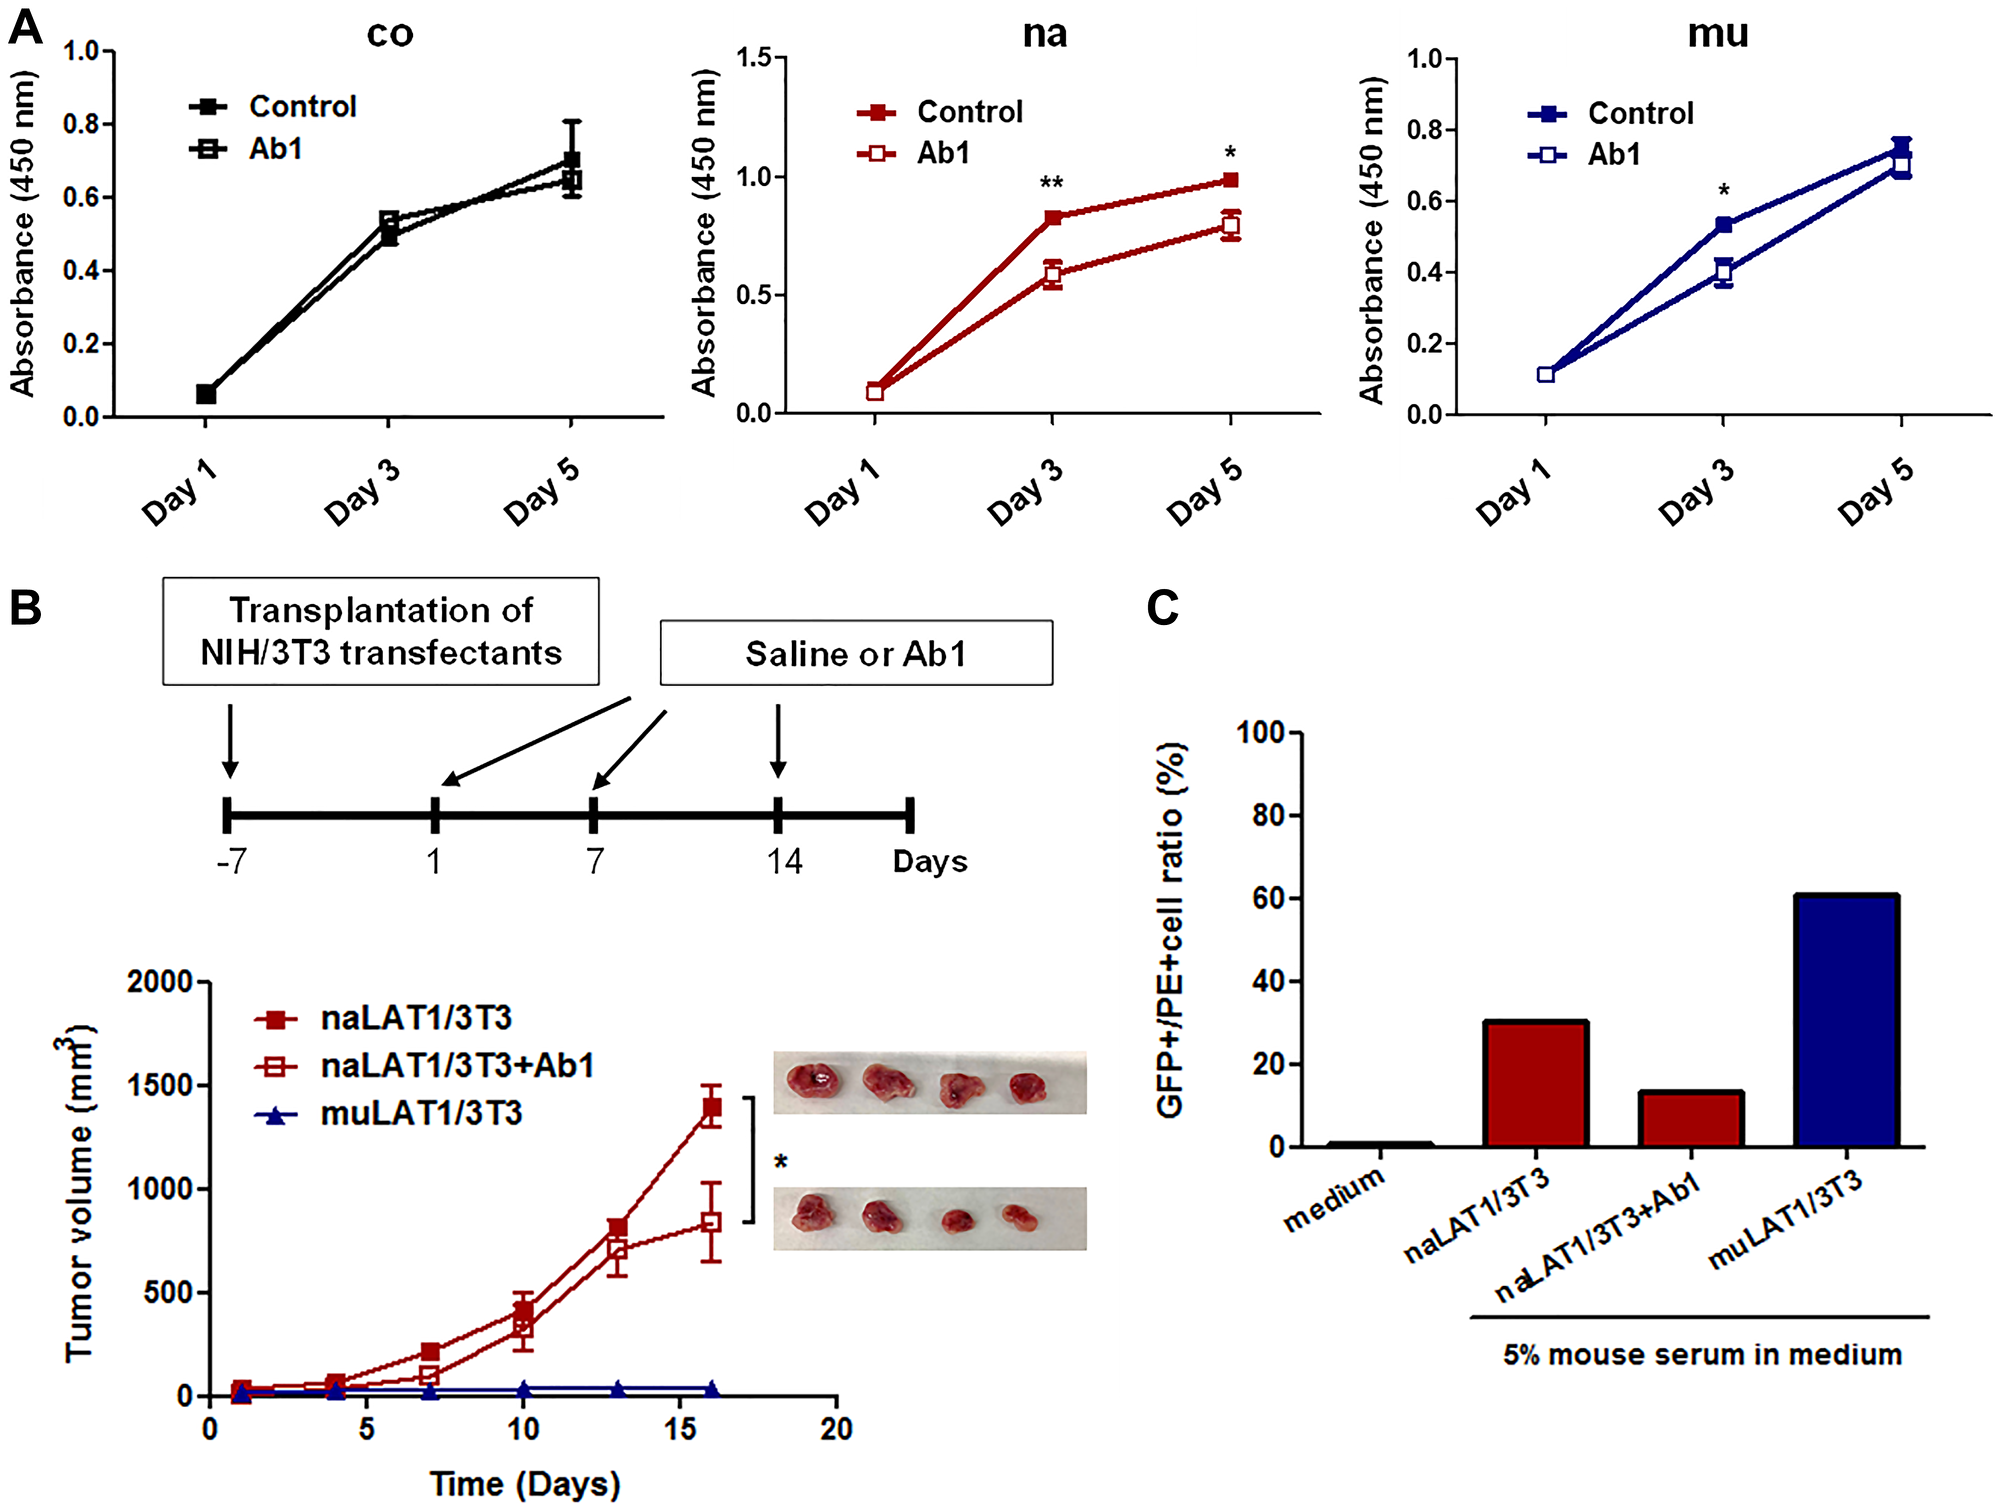 Effects of anti-LAT1 (Ab1) mAb on NIH/3T3 cell lines overexpressing LAT1, and mouse antibody production against NIH/3T3 cell lines expressing native or mutant human LAT1.